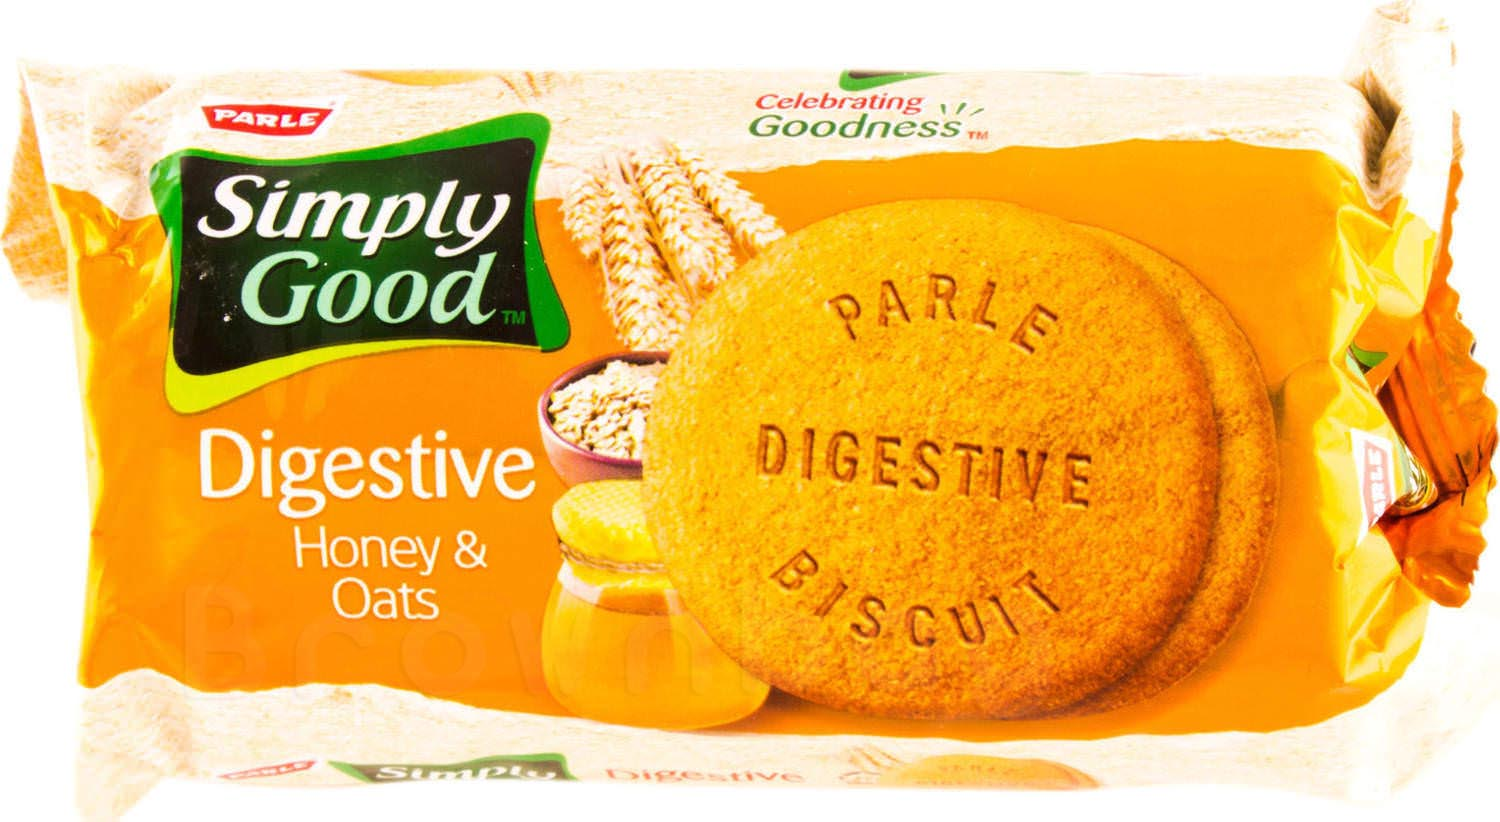 Parle SIMPLY GOOD Digestive Honey & Oats Biscuits